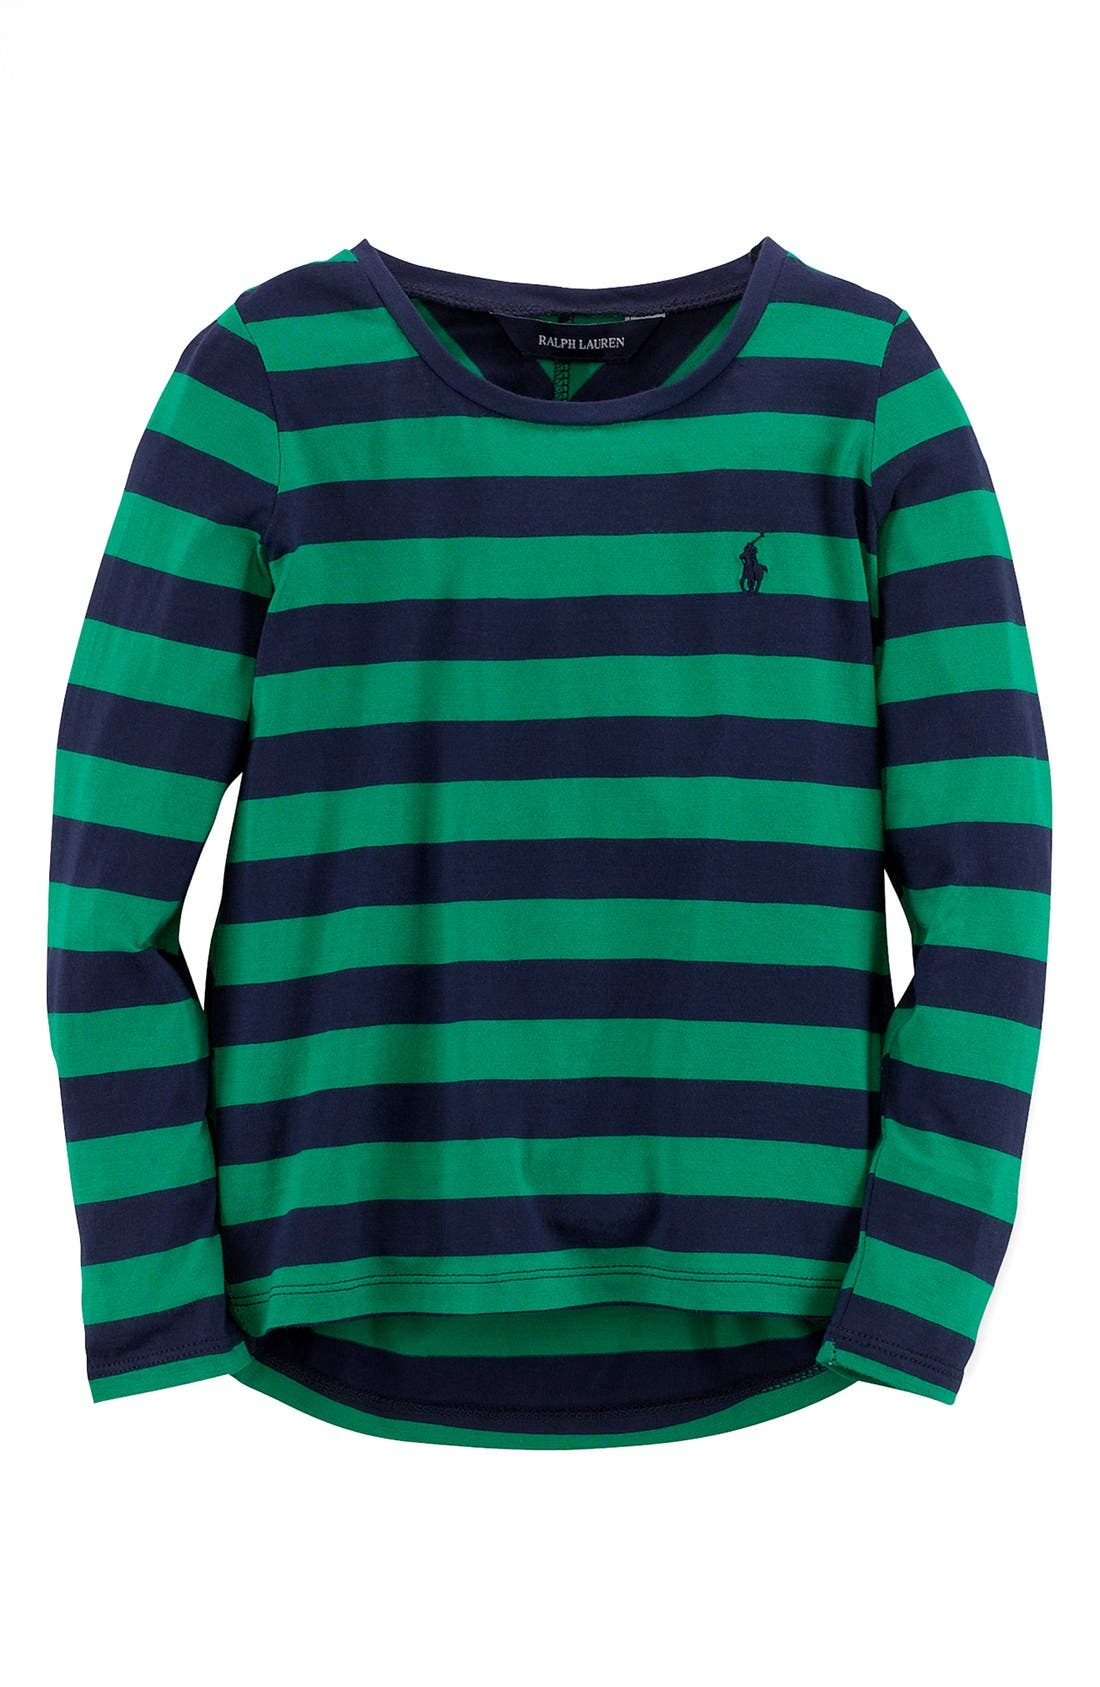 Main Image - Ralph Lauren Jersey Top (Toddler Girls)